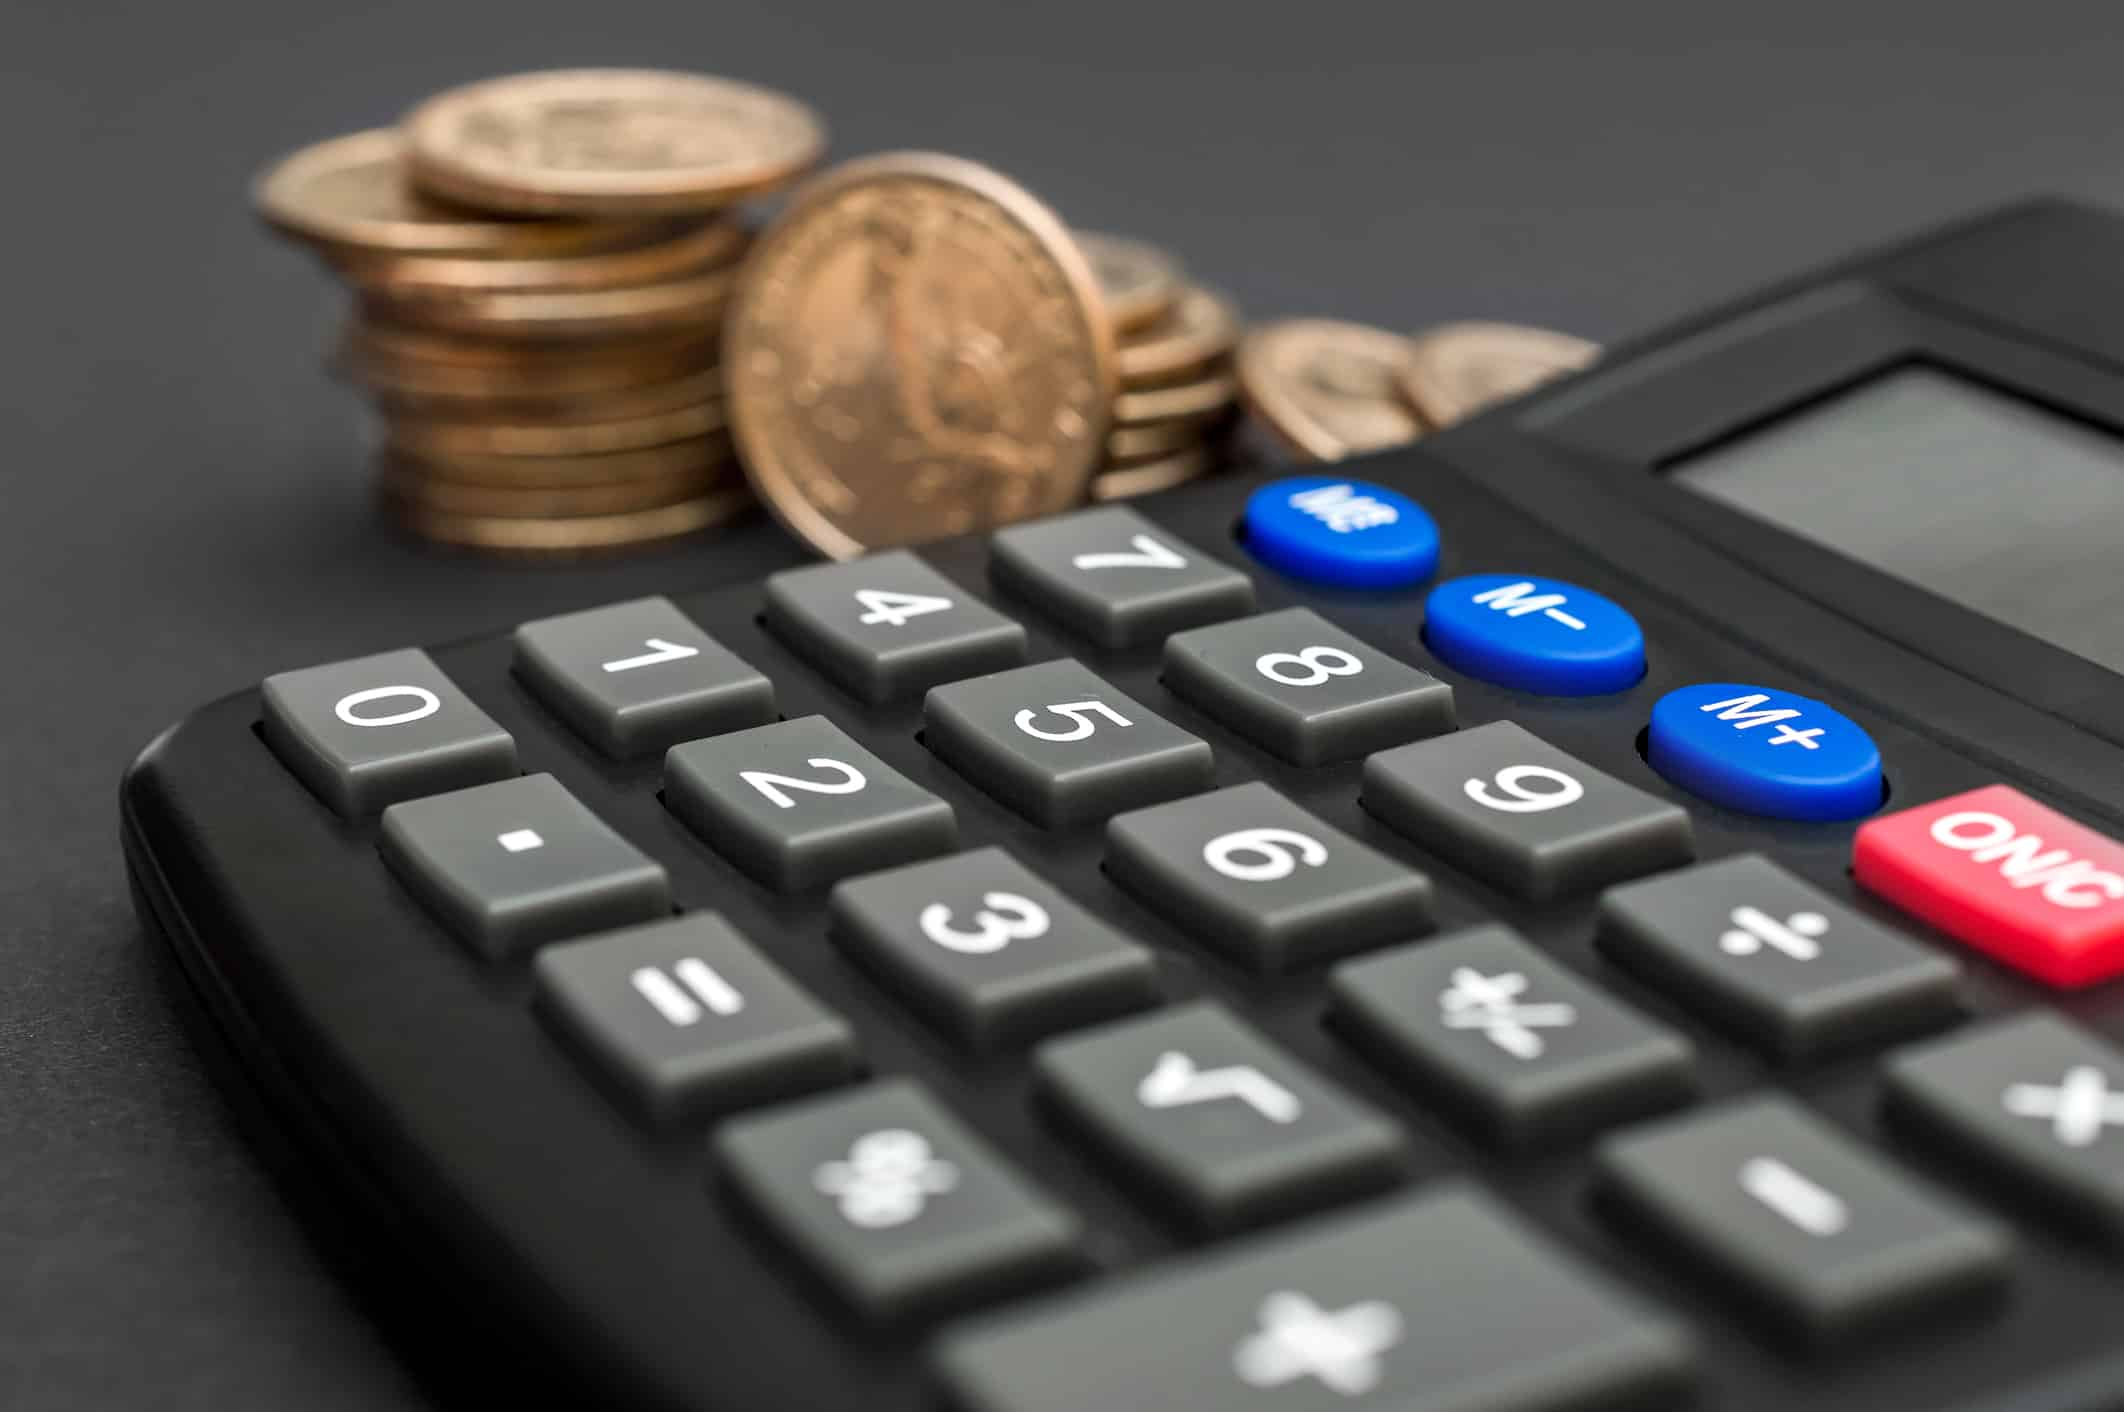 A calculator for refinancing private student loans to save on interest